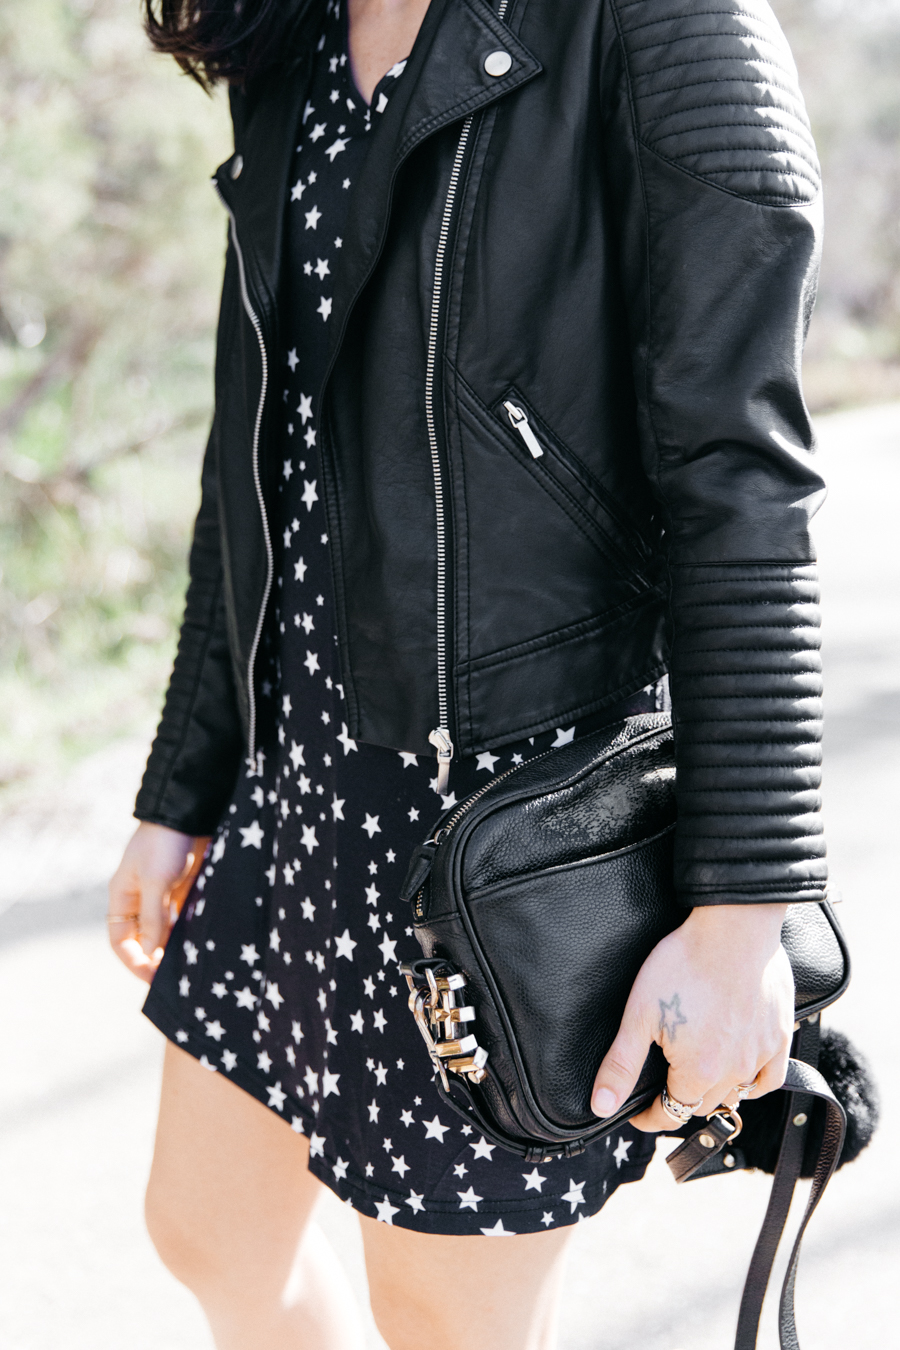 Faux leather biker jacket from Marks & Spencer.